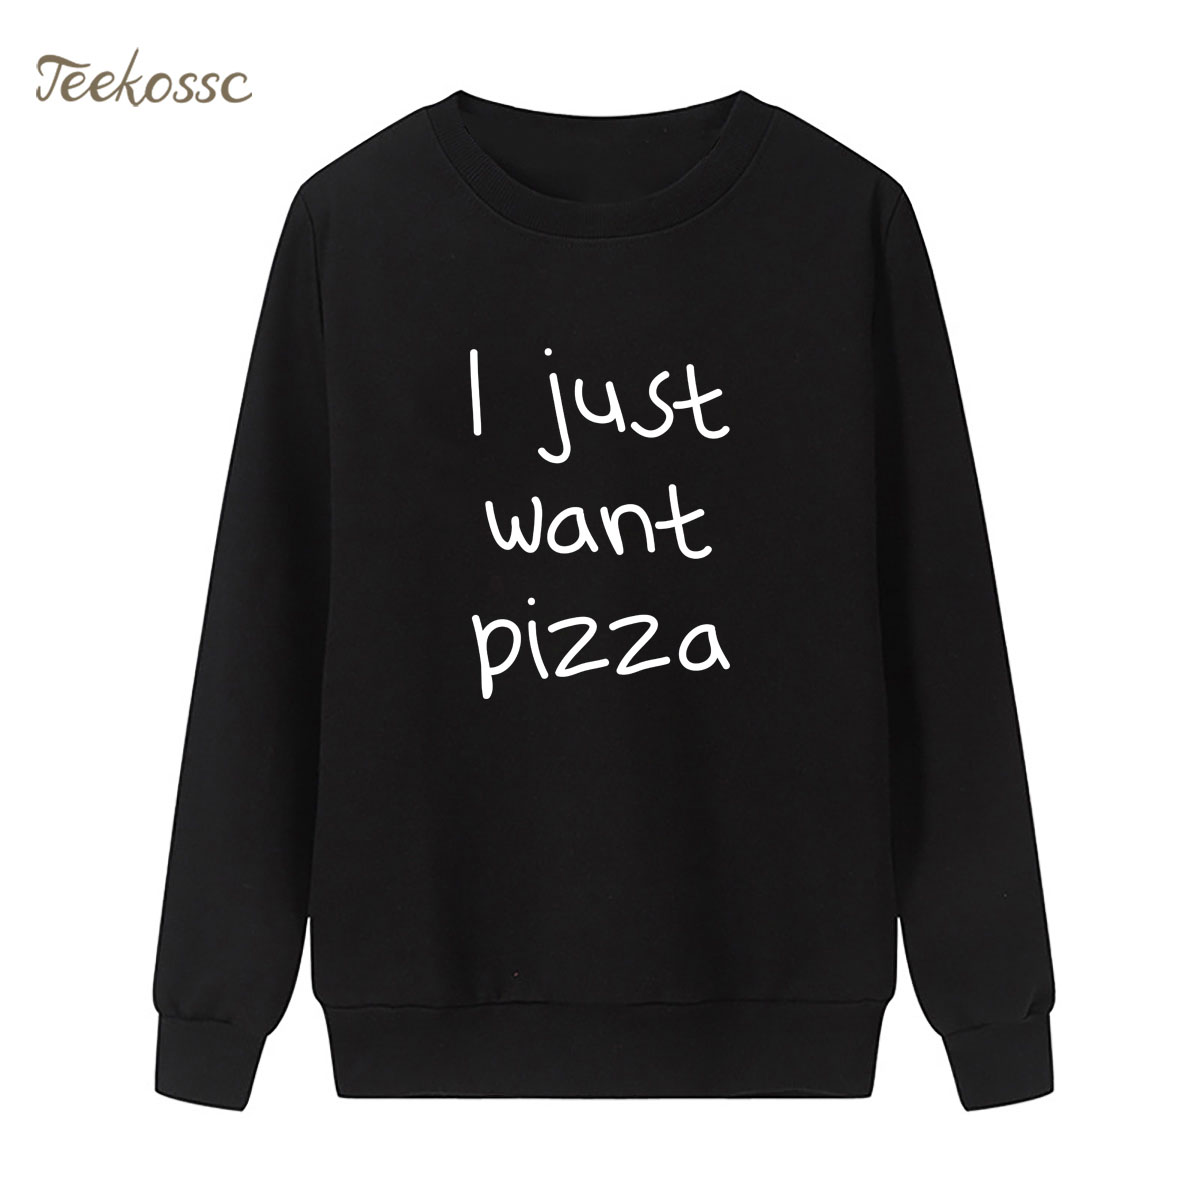 I just want Pizza Sweatshirt Letters Print Hoodie 2018 New Winter Autumn Women Lasdies Pullover Loose Fleece Hipster Streetwear